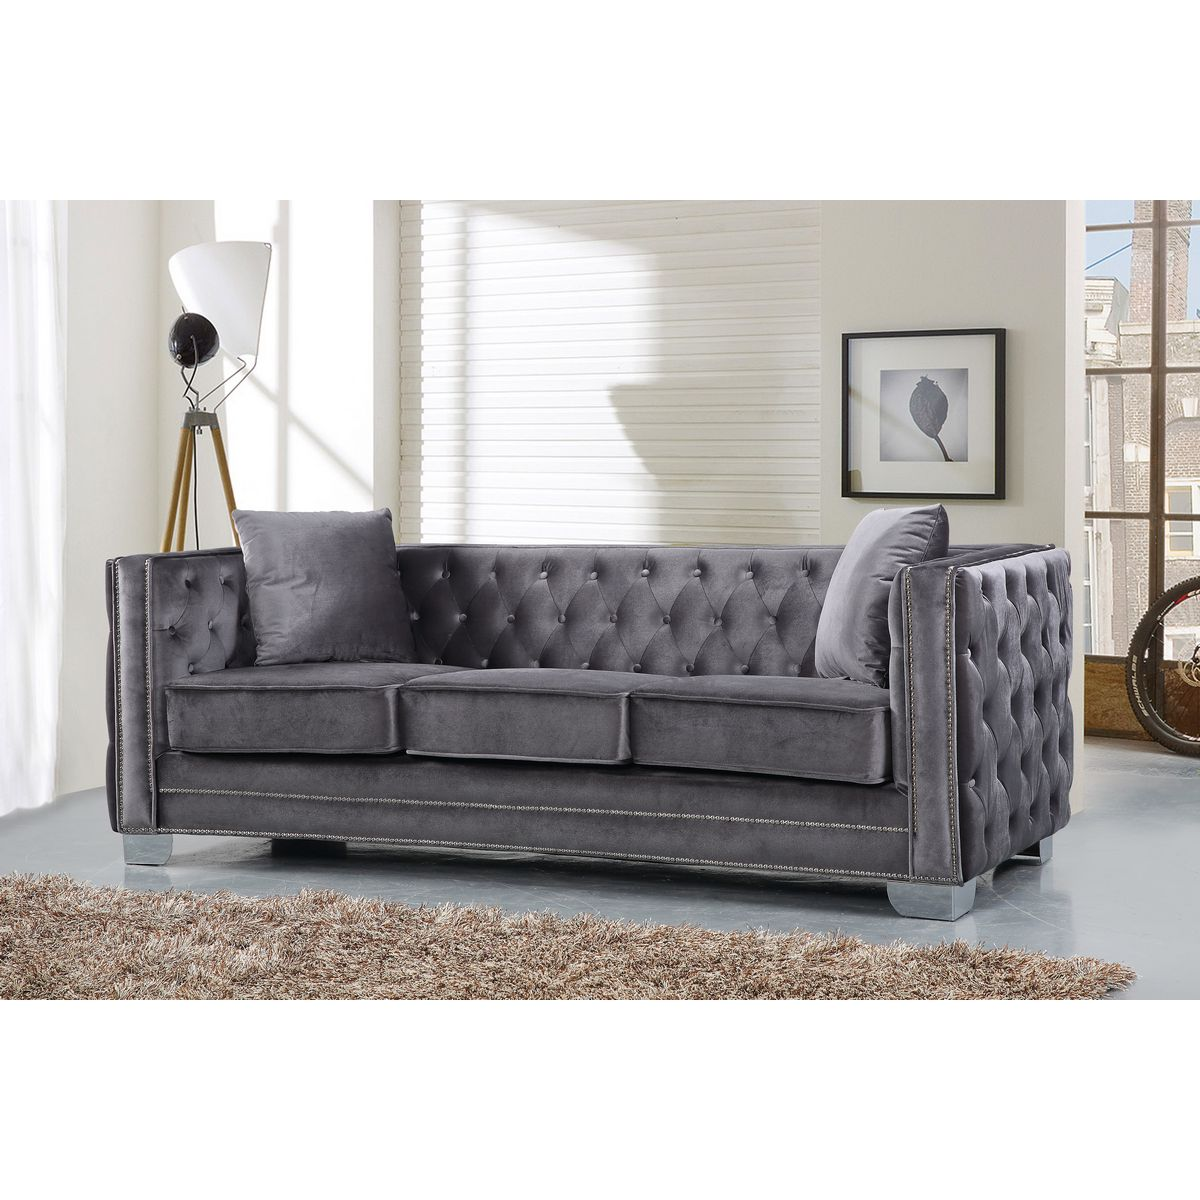 meridian furniture 648gry s reese grey velvet sofa w tufted